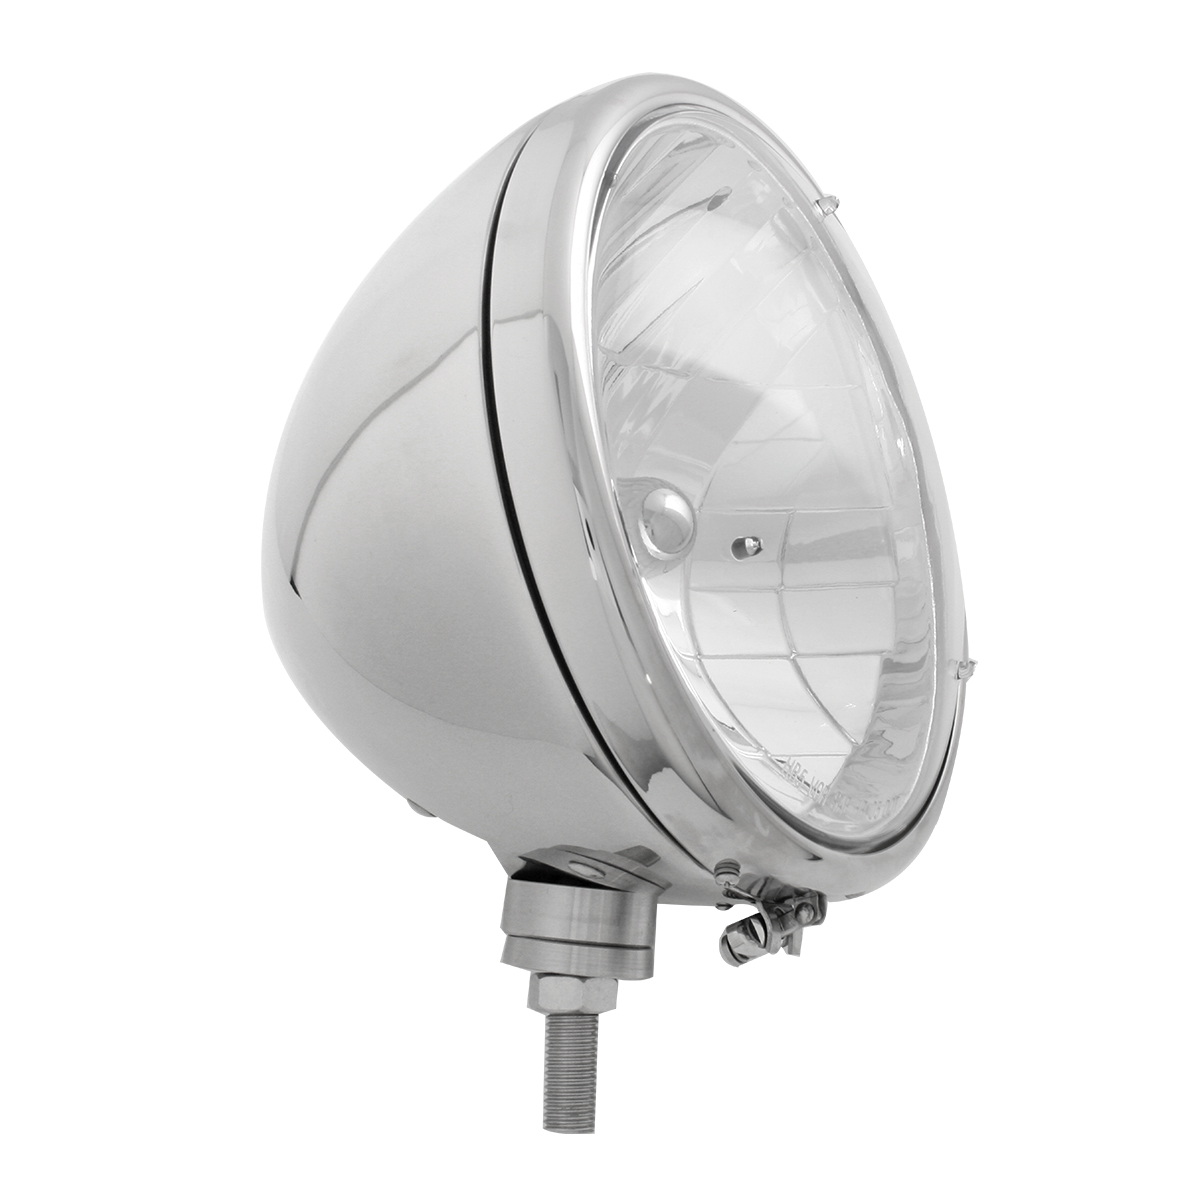 "#87730 Stainless Steel 9 ½"" Headlight - Side View"